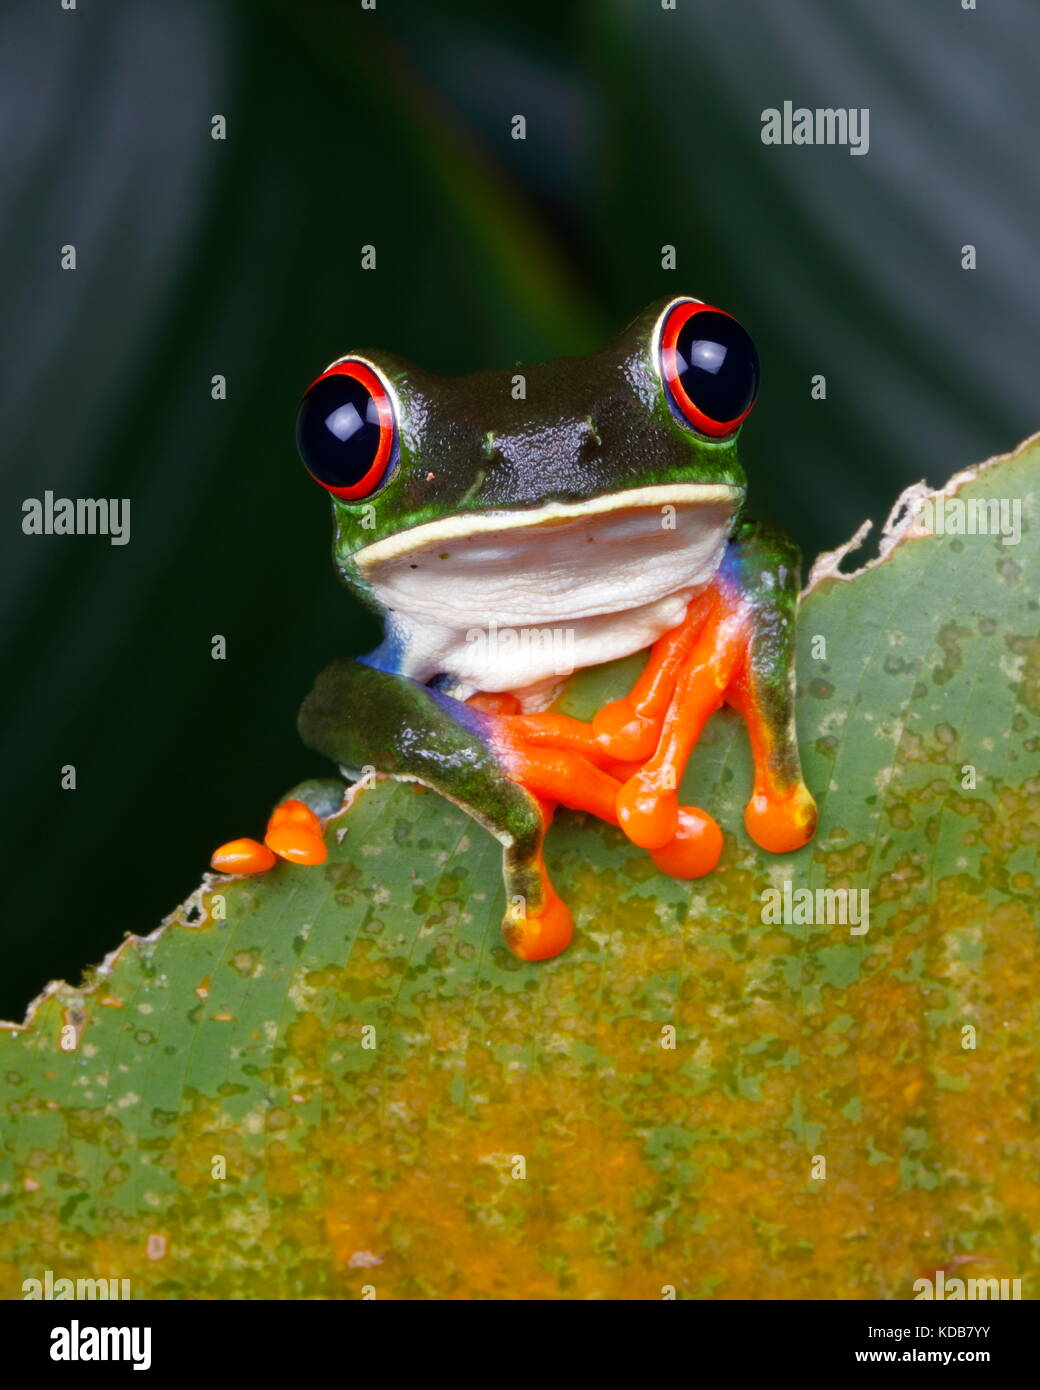 A red-eyed tree frog, These Agalychnis callidryas. - Stock Image